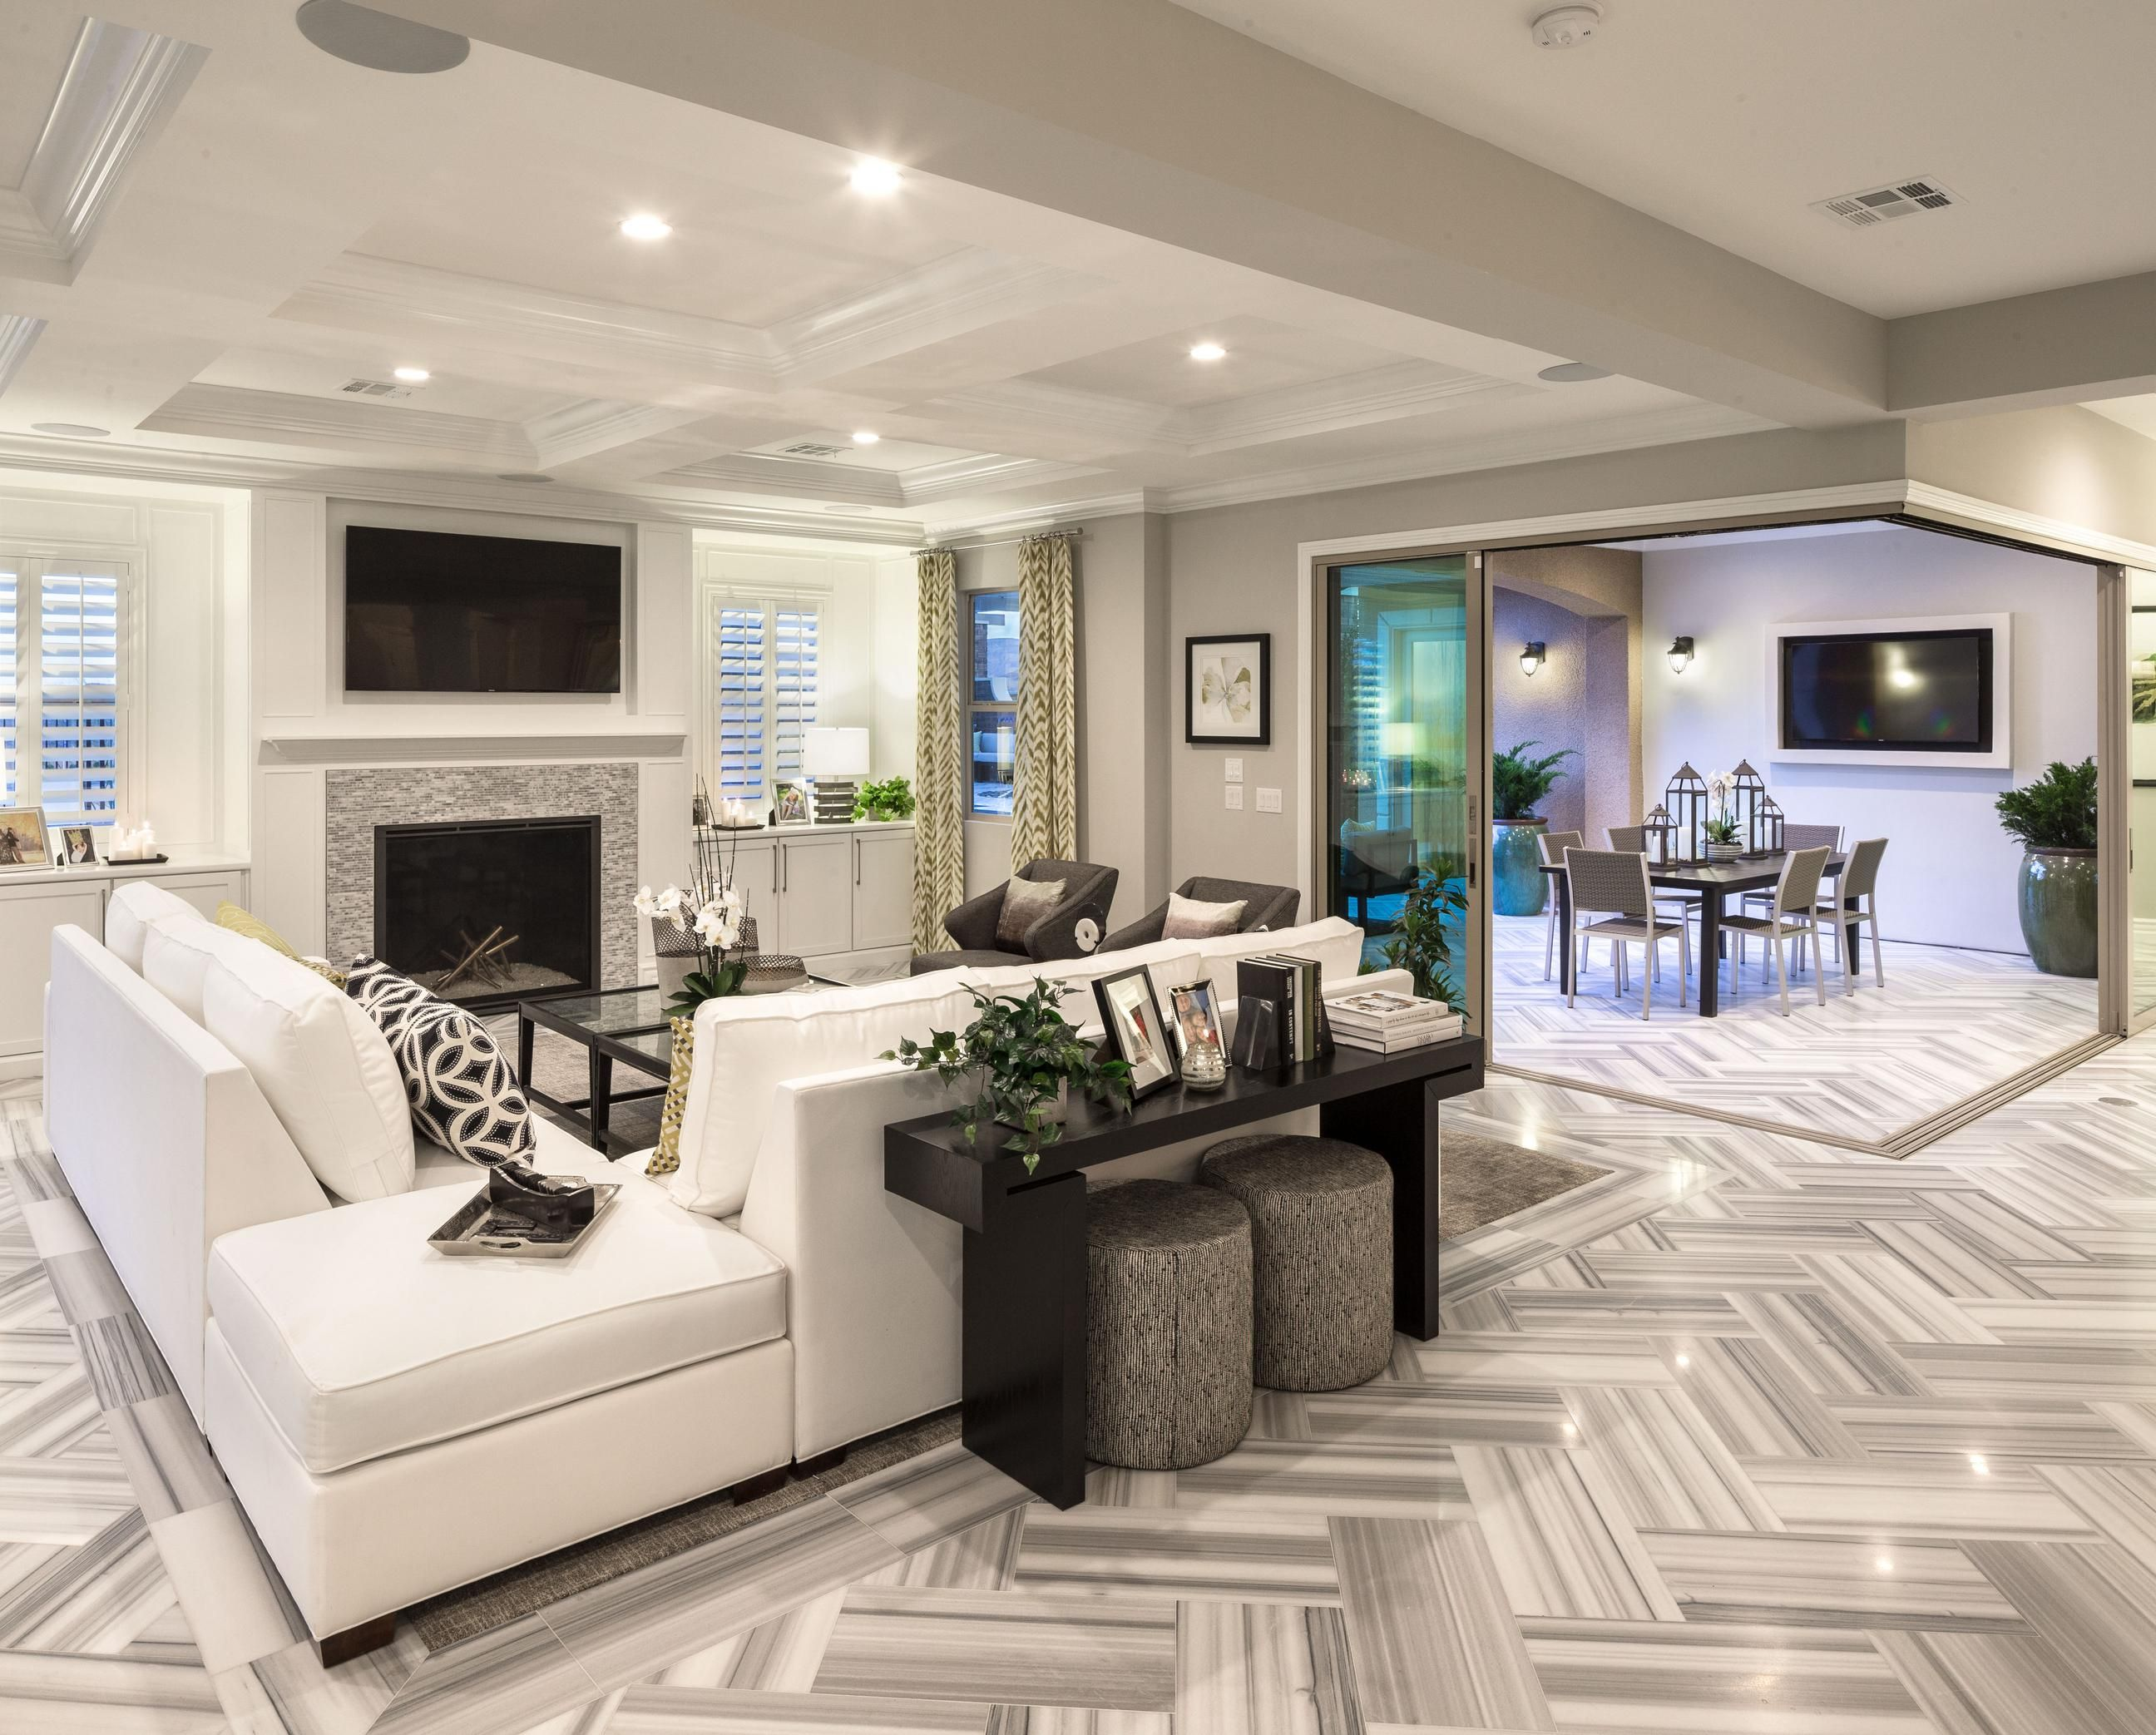 Model Homes Images Interior Enjoy This Exquisitely Spacious Family Room From The Los